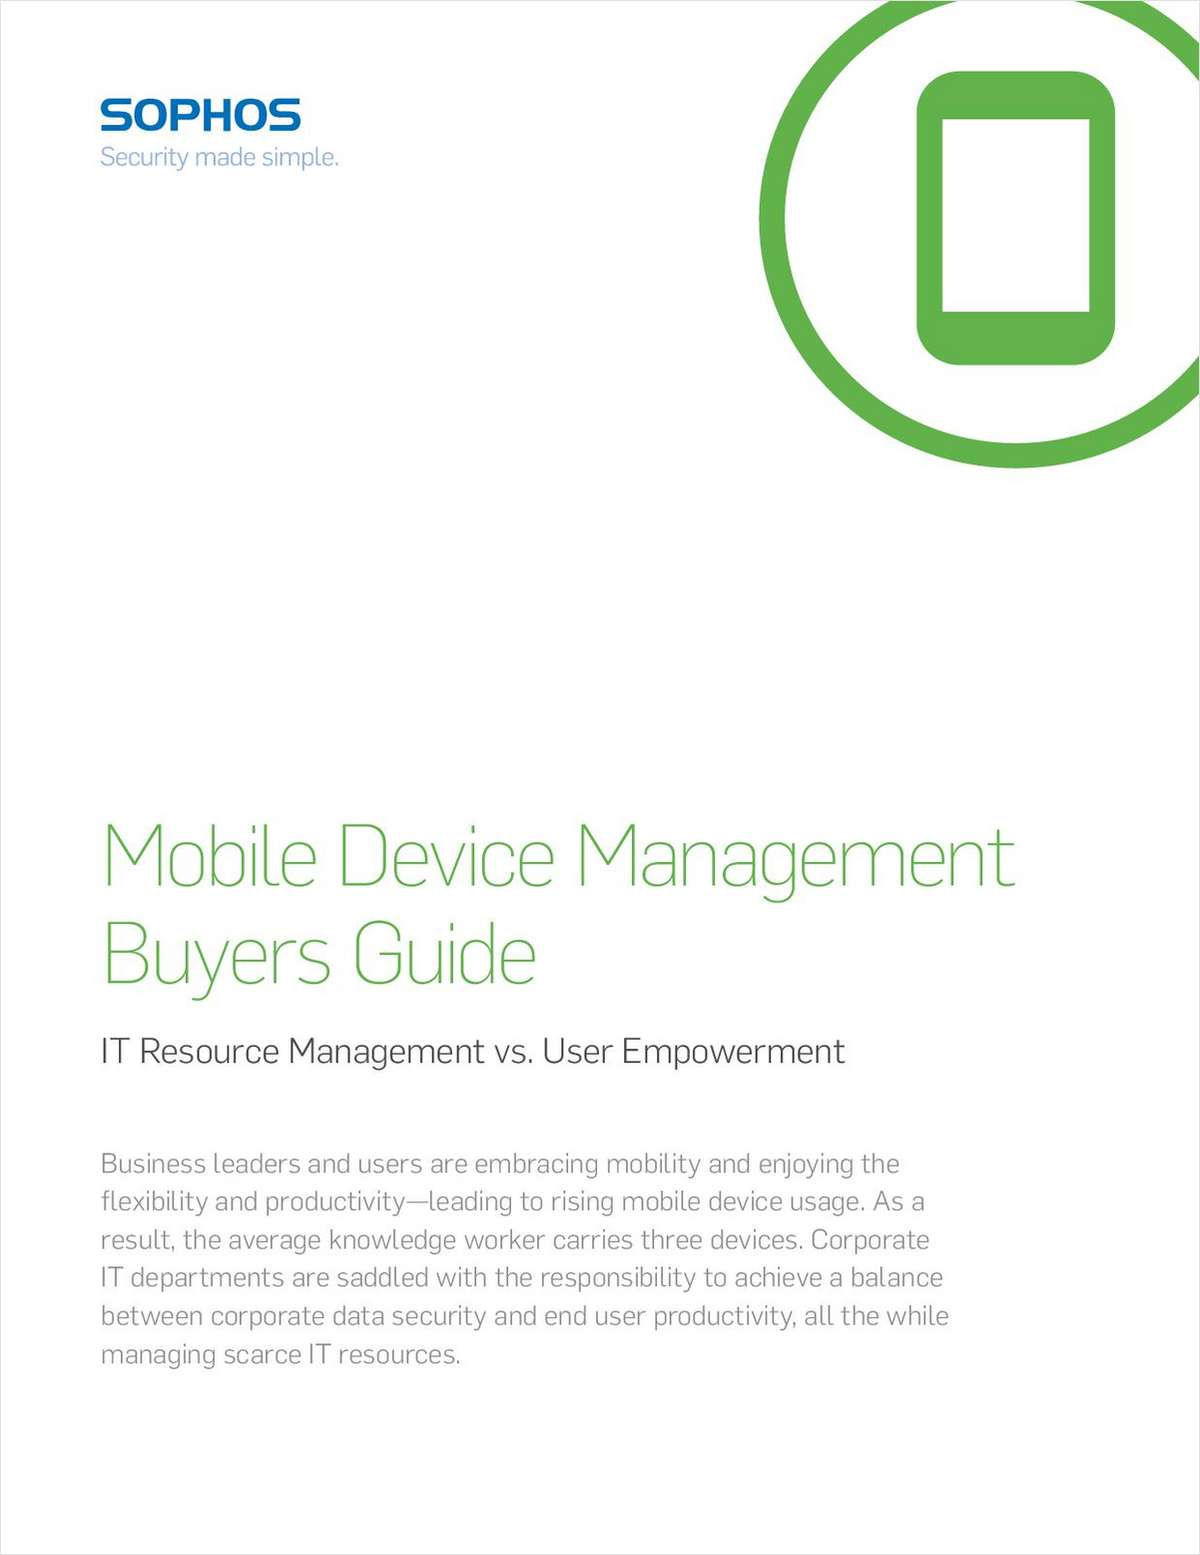 Mobile Device Management Buyers Guide